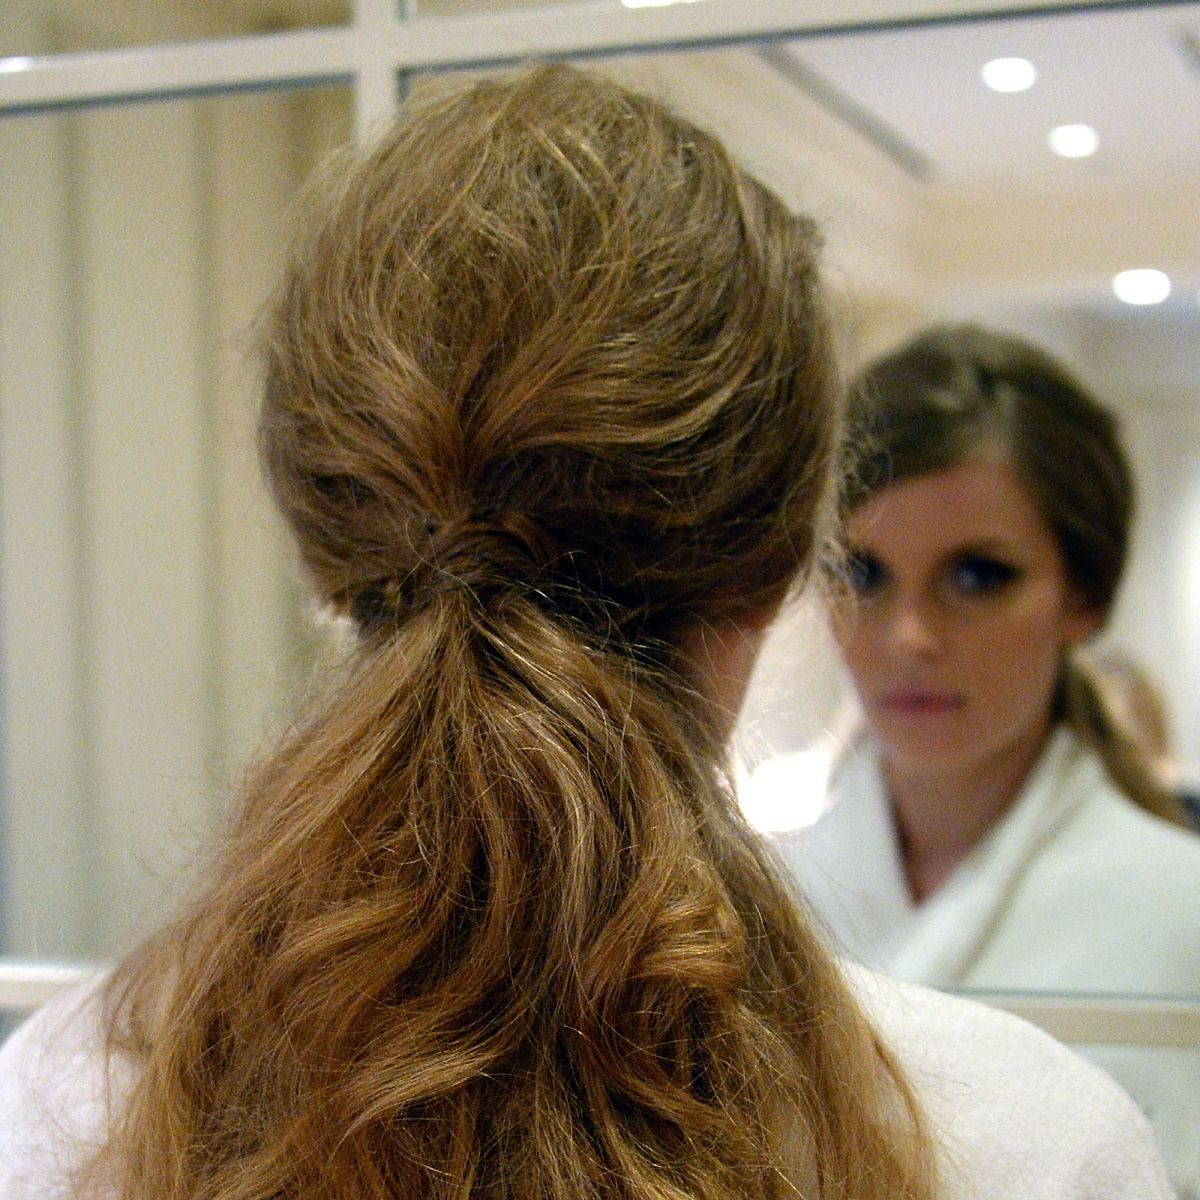 Hairstyle Tutorial: 3 Ponytails For The Weekend Pertaining To Well Known Long Tousled Voluminous Hairstyles (View 15 of 20)